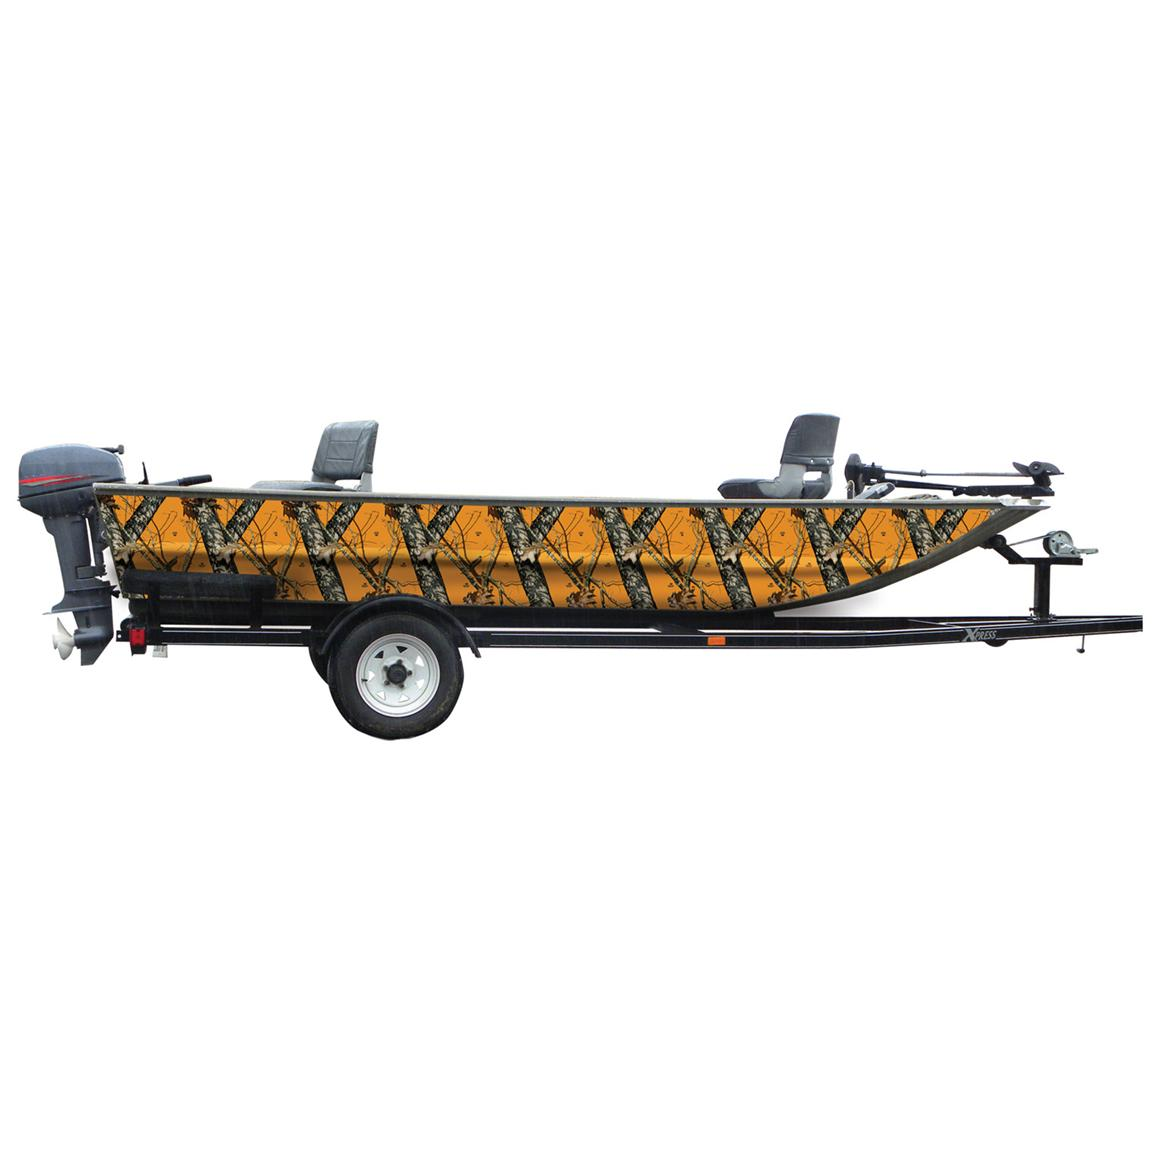 Mossy Oak Graphics® 16 foot Boat Side Camouflage Kit, Blaze Camo